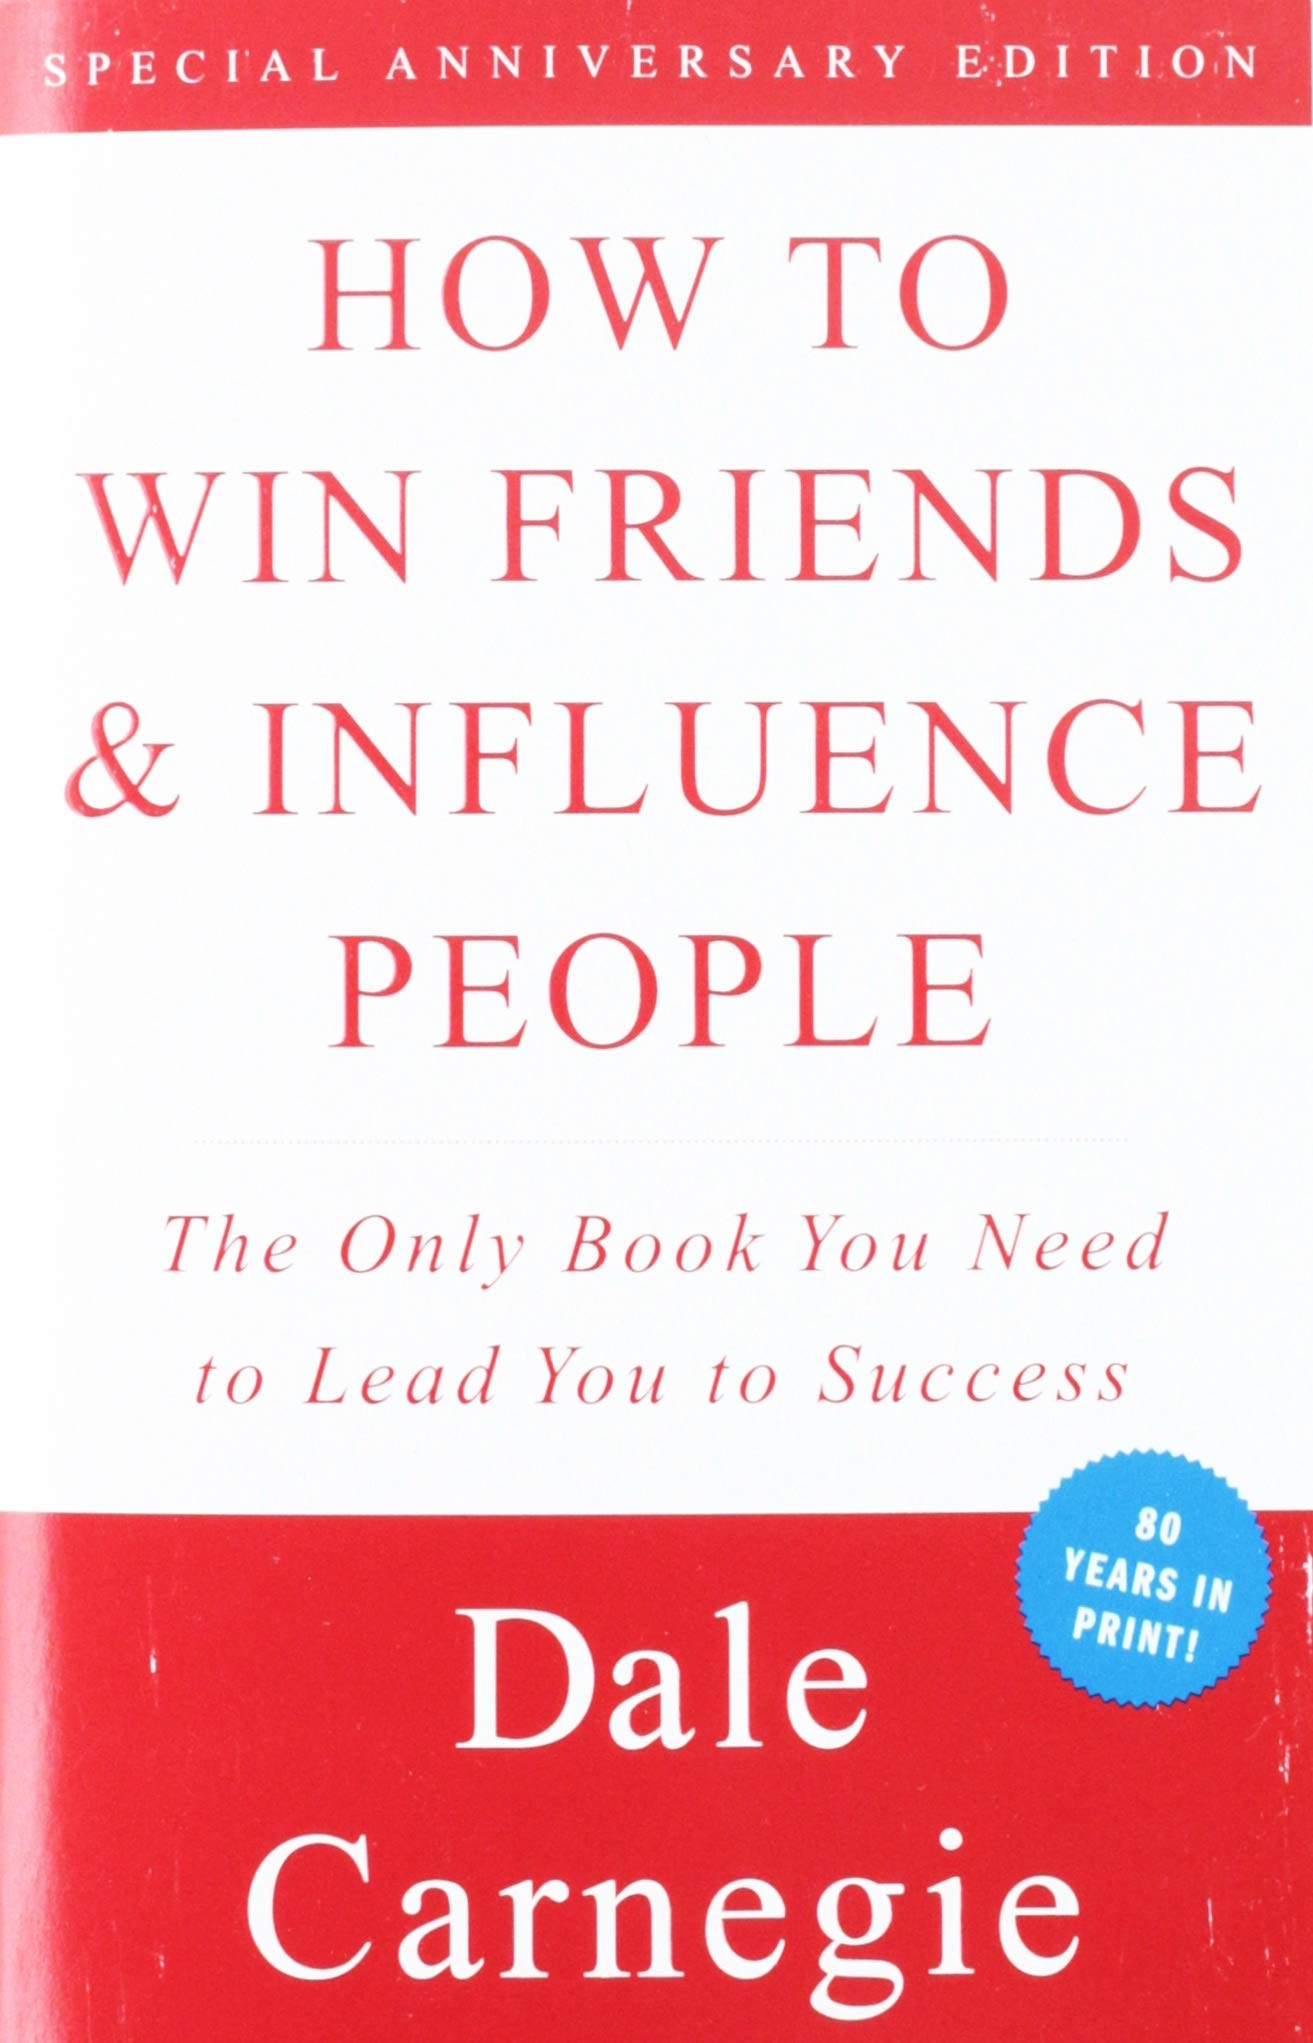 How to Win Friends and Influence People Paperback – Oct 1 1998